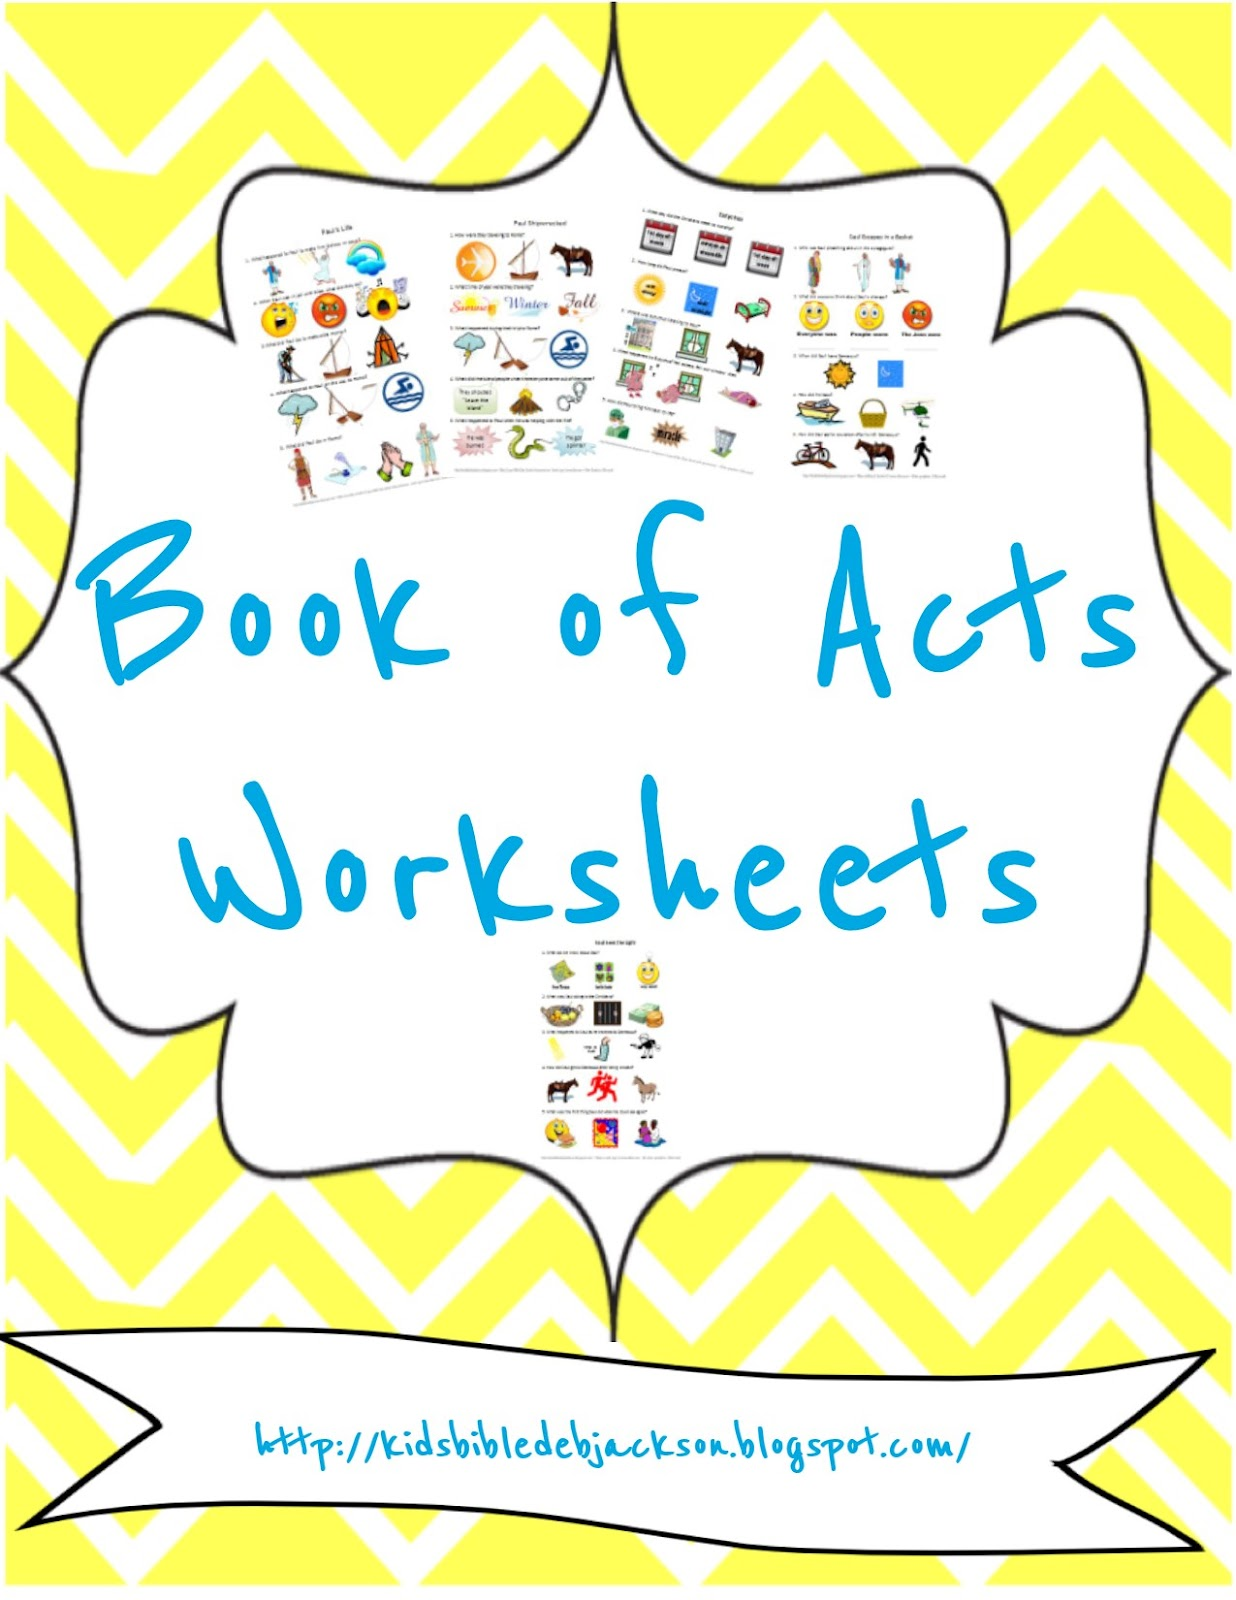 http://kidsbibledebjackson.blogspot.com/2012/11/this-is-basically-what-worksheets-for.html